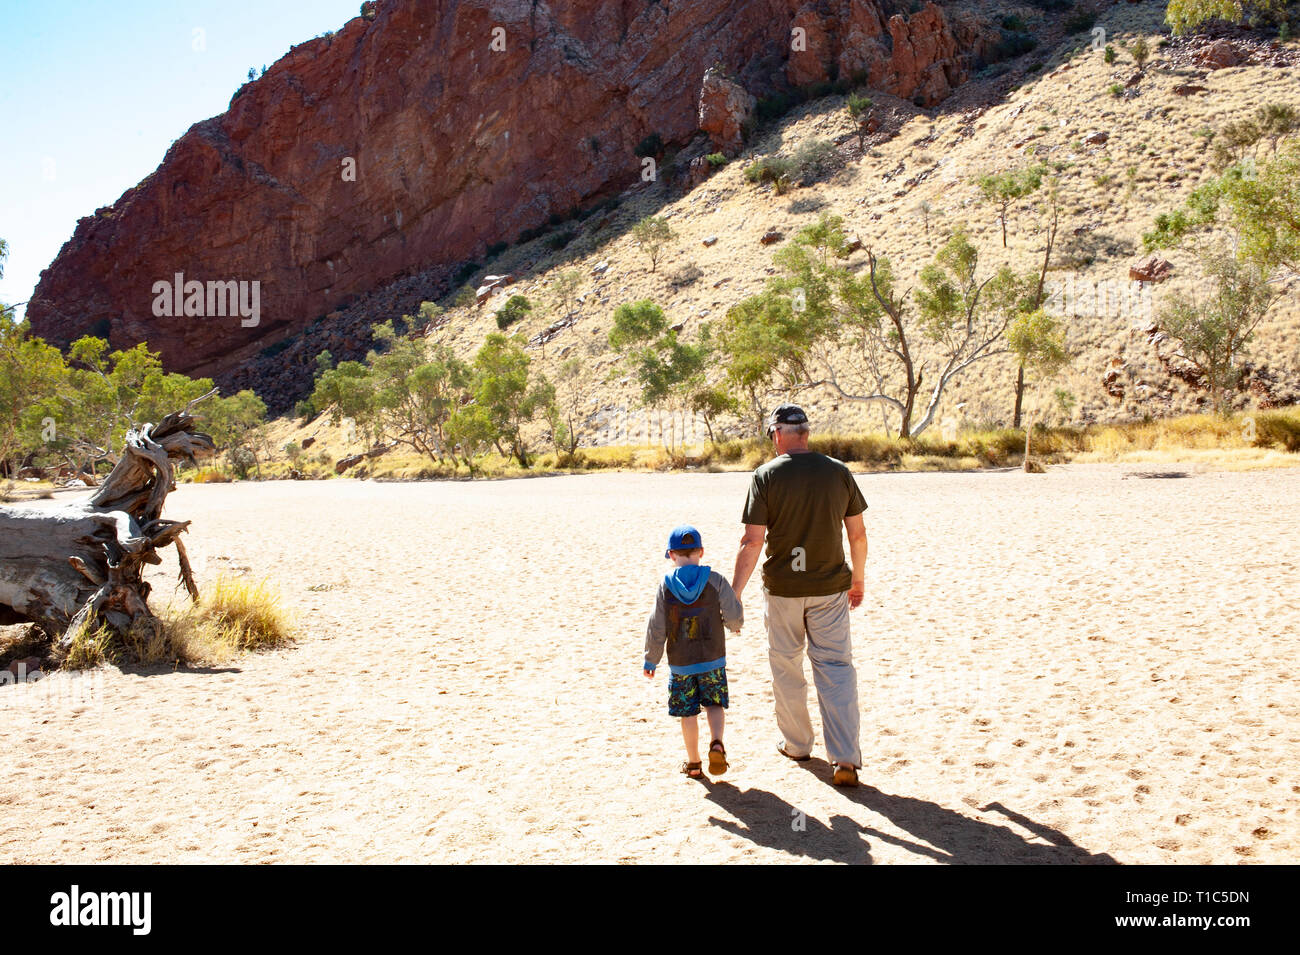 A father and son holding hands walking through Simpsons Gap, Northern Territory, Australia - Stock Image